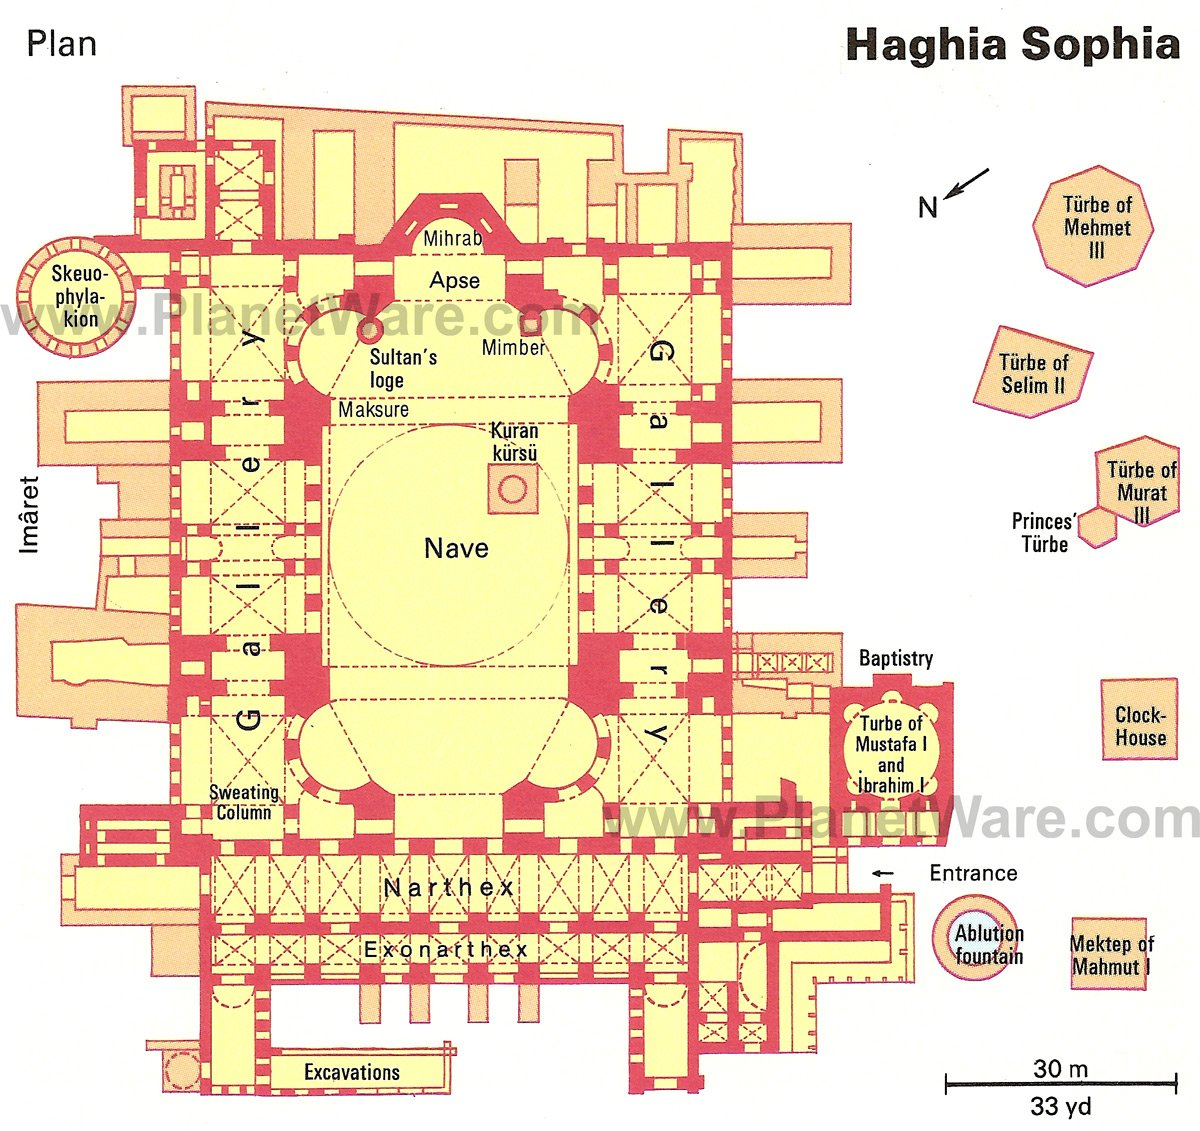 exploring aya sofya hagia sophia a visitors guide